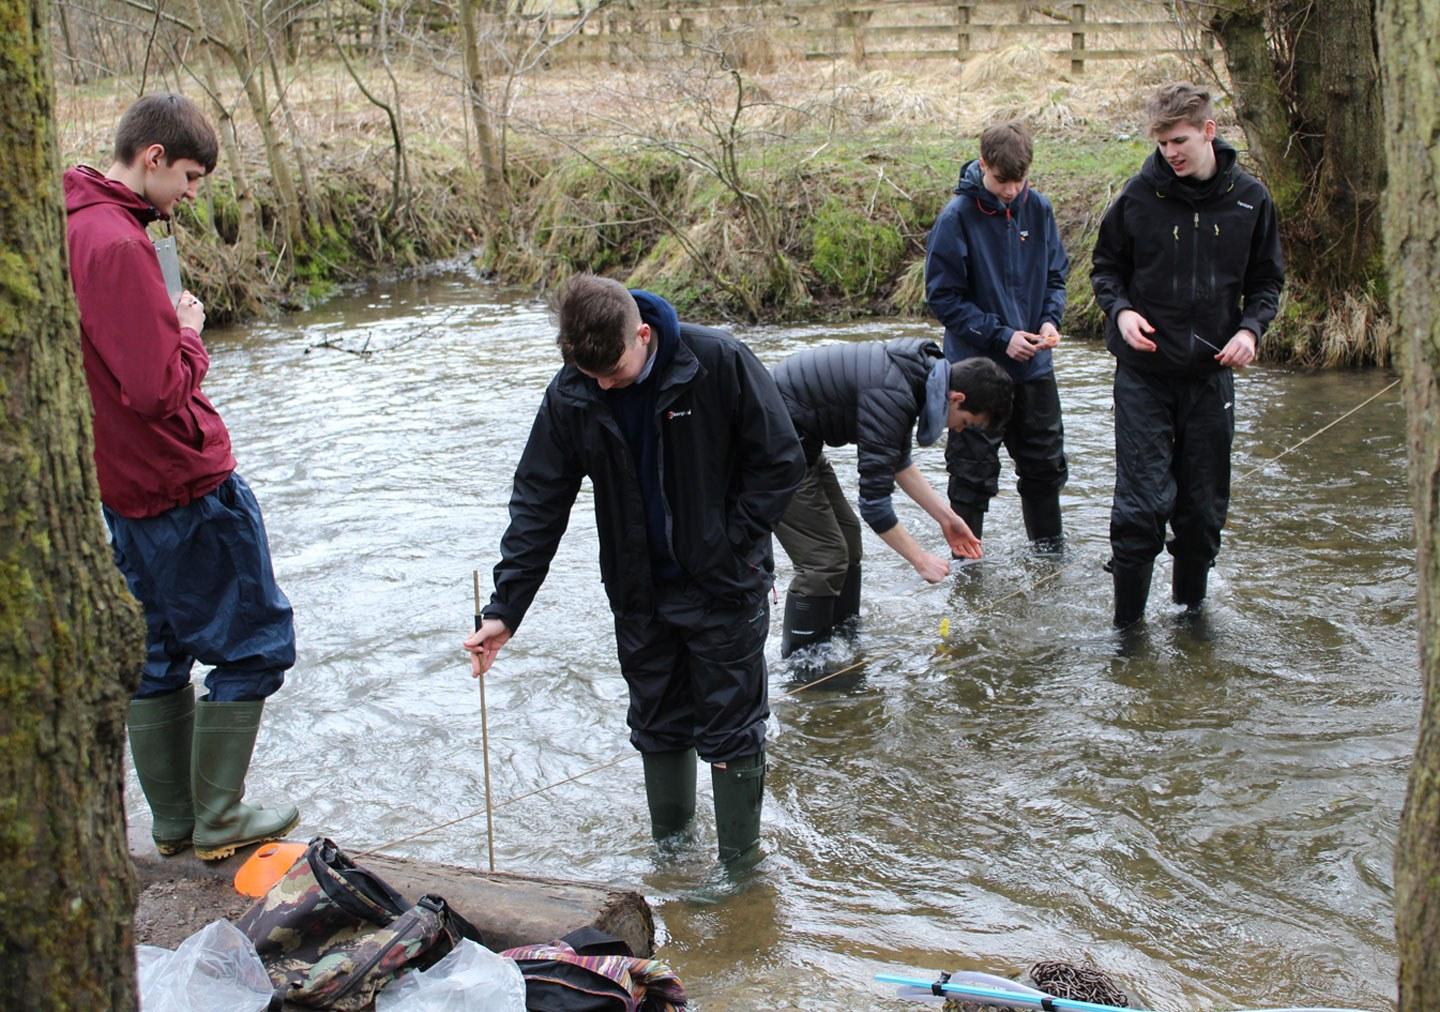 Five students are wading in a river taking measurements of the water levels